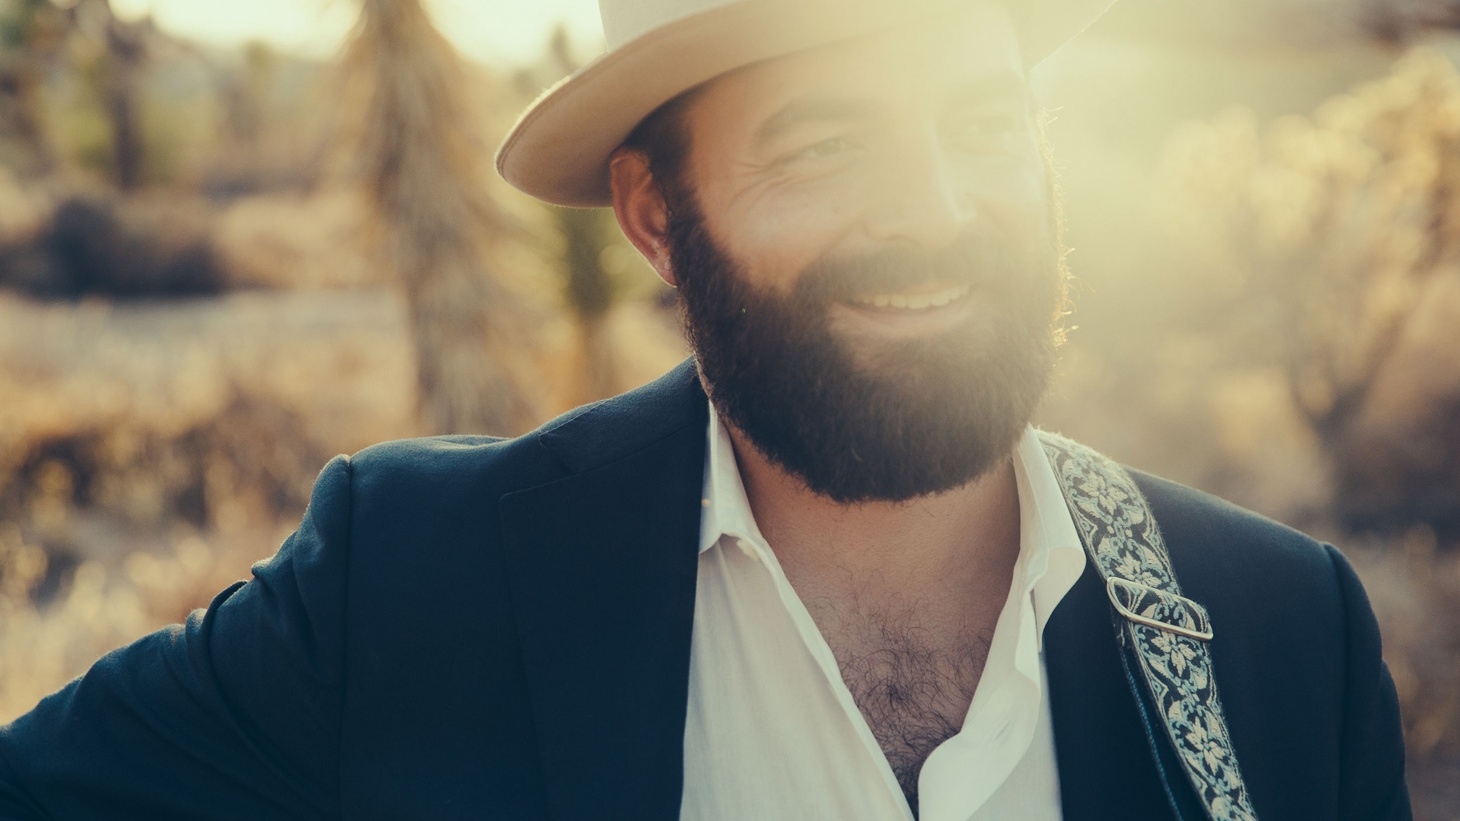 Nashville-based songwriter Drew Holcomb tackles everyday issues with a calm assurance on Today's Top Tune...